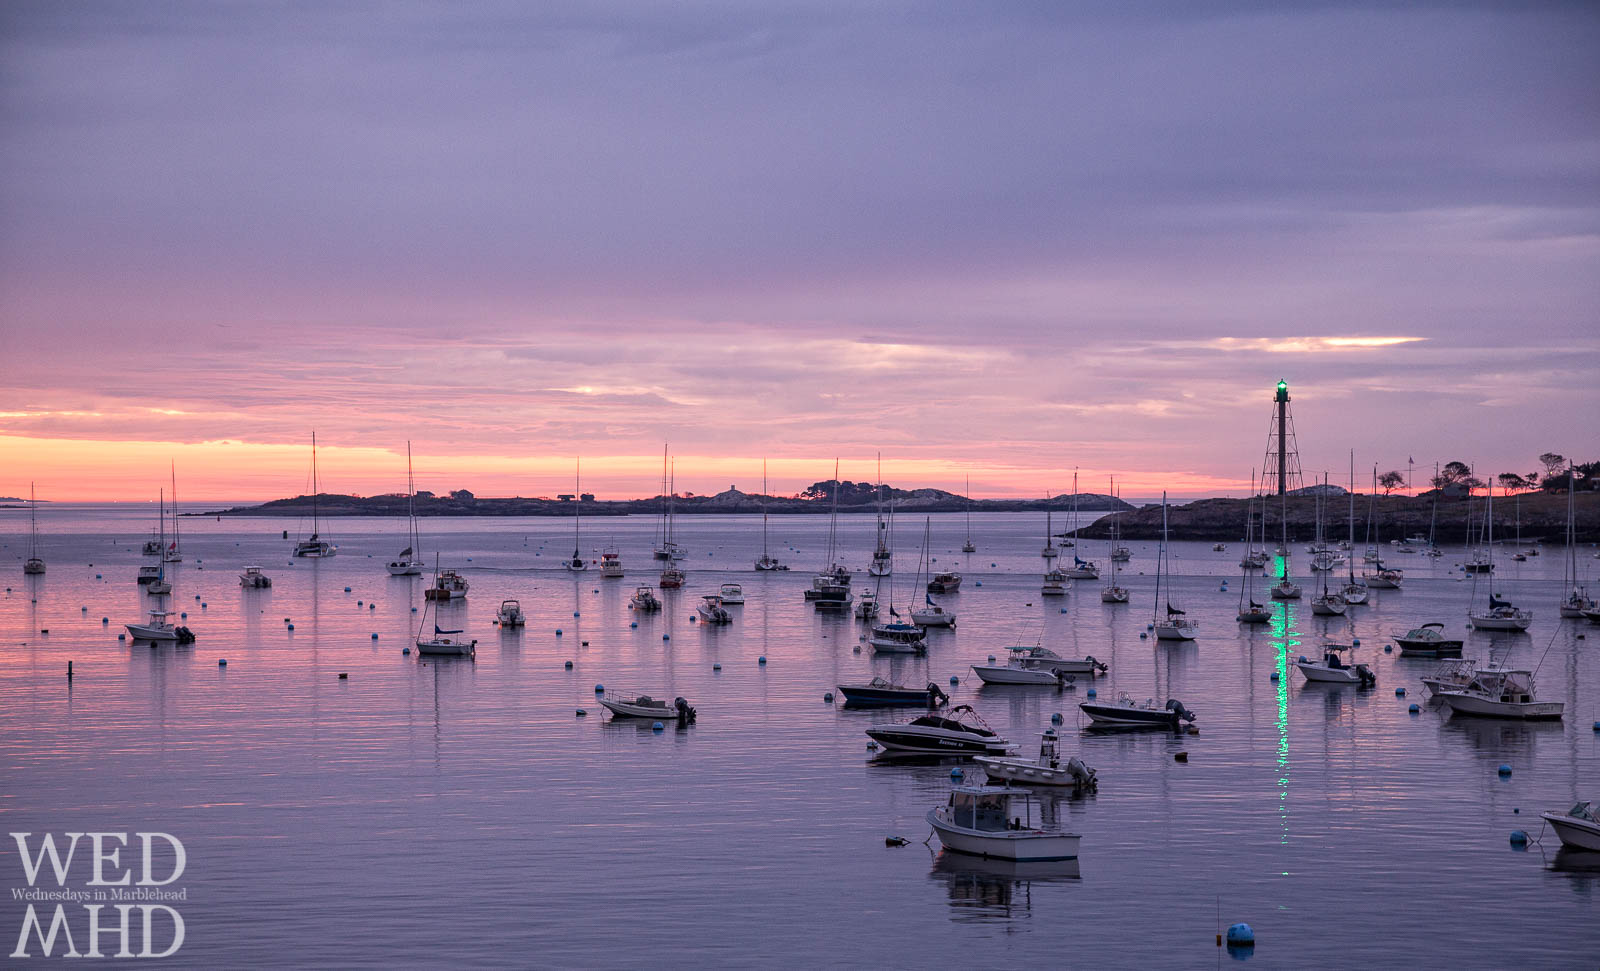 The green beacon atop the lighthouse is reflected in the still waters of the harbor as a new day dawns in Marblehead